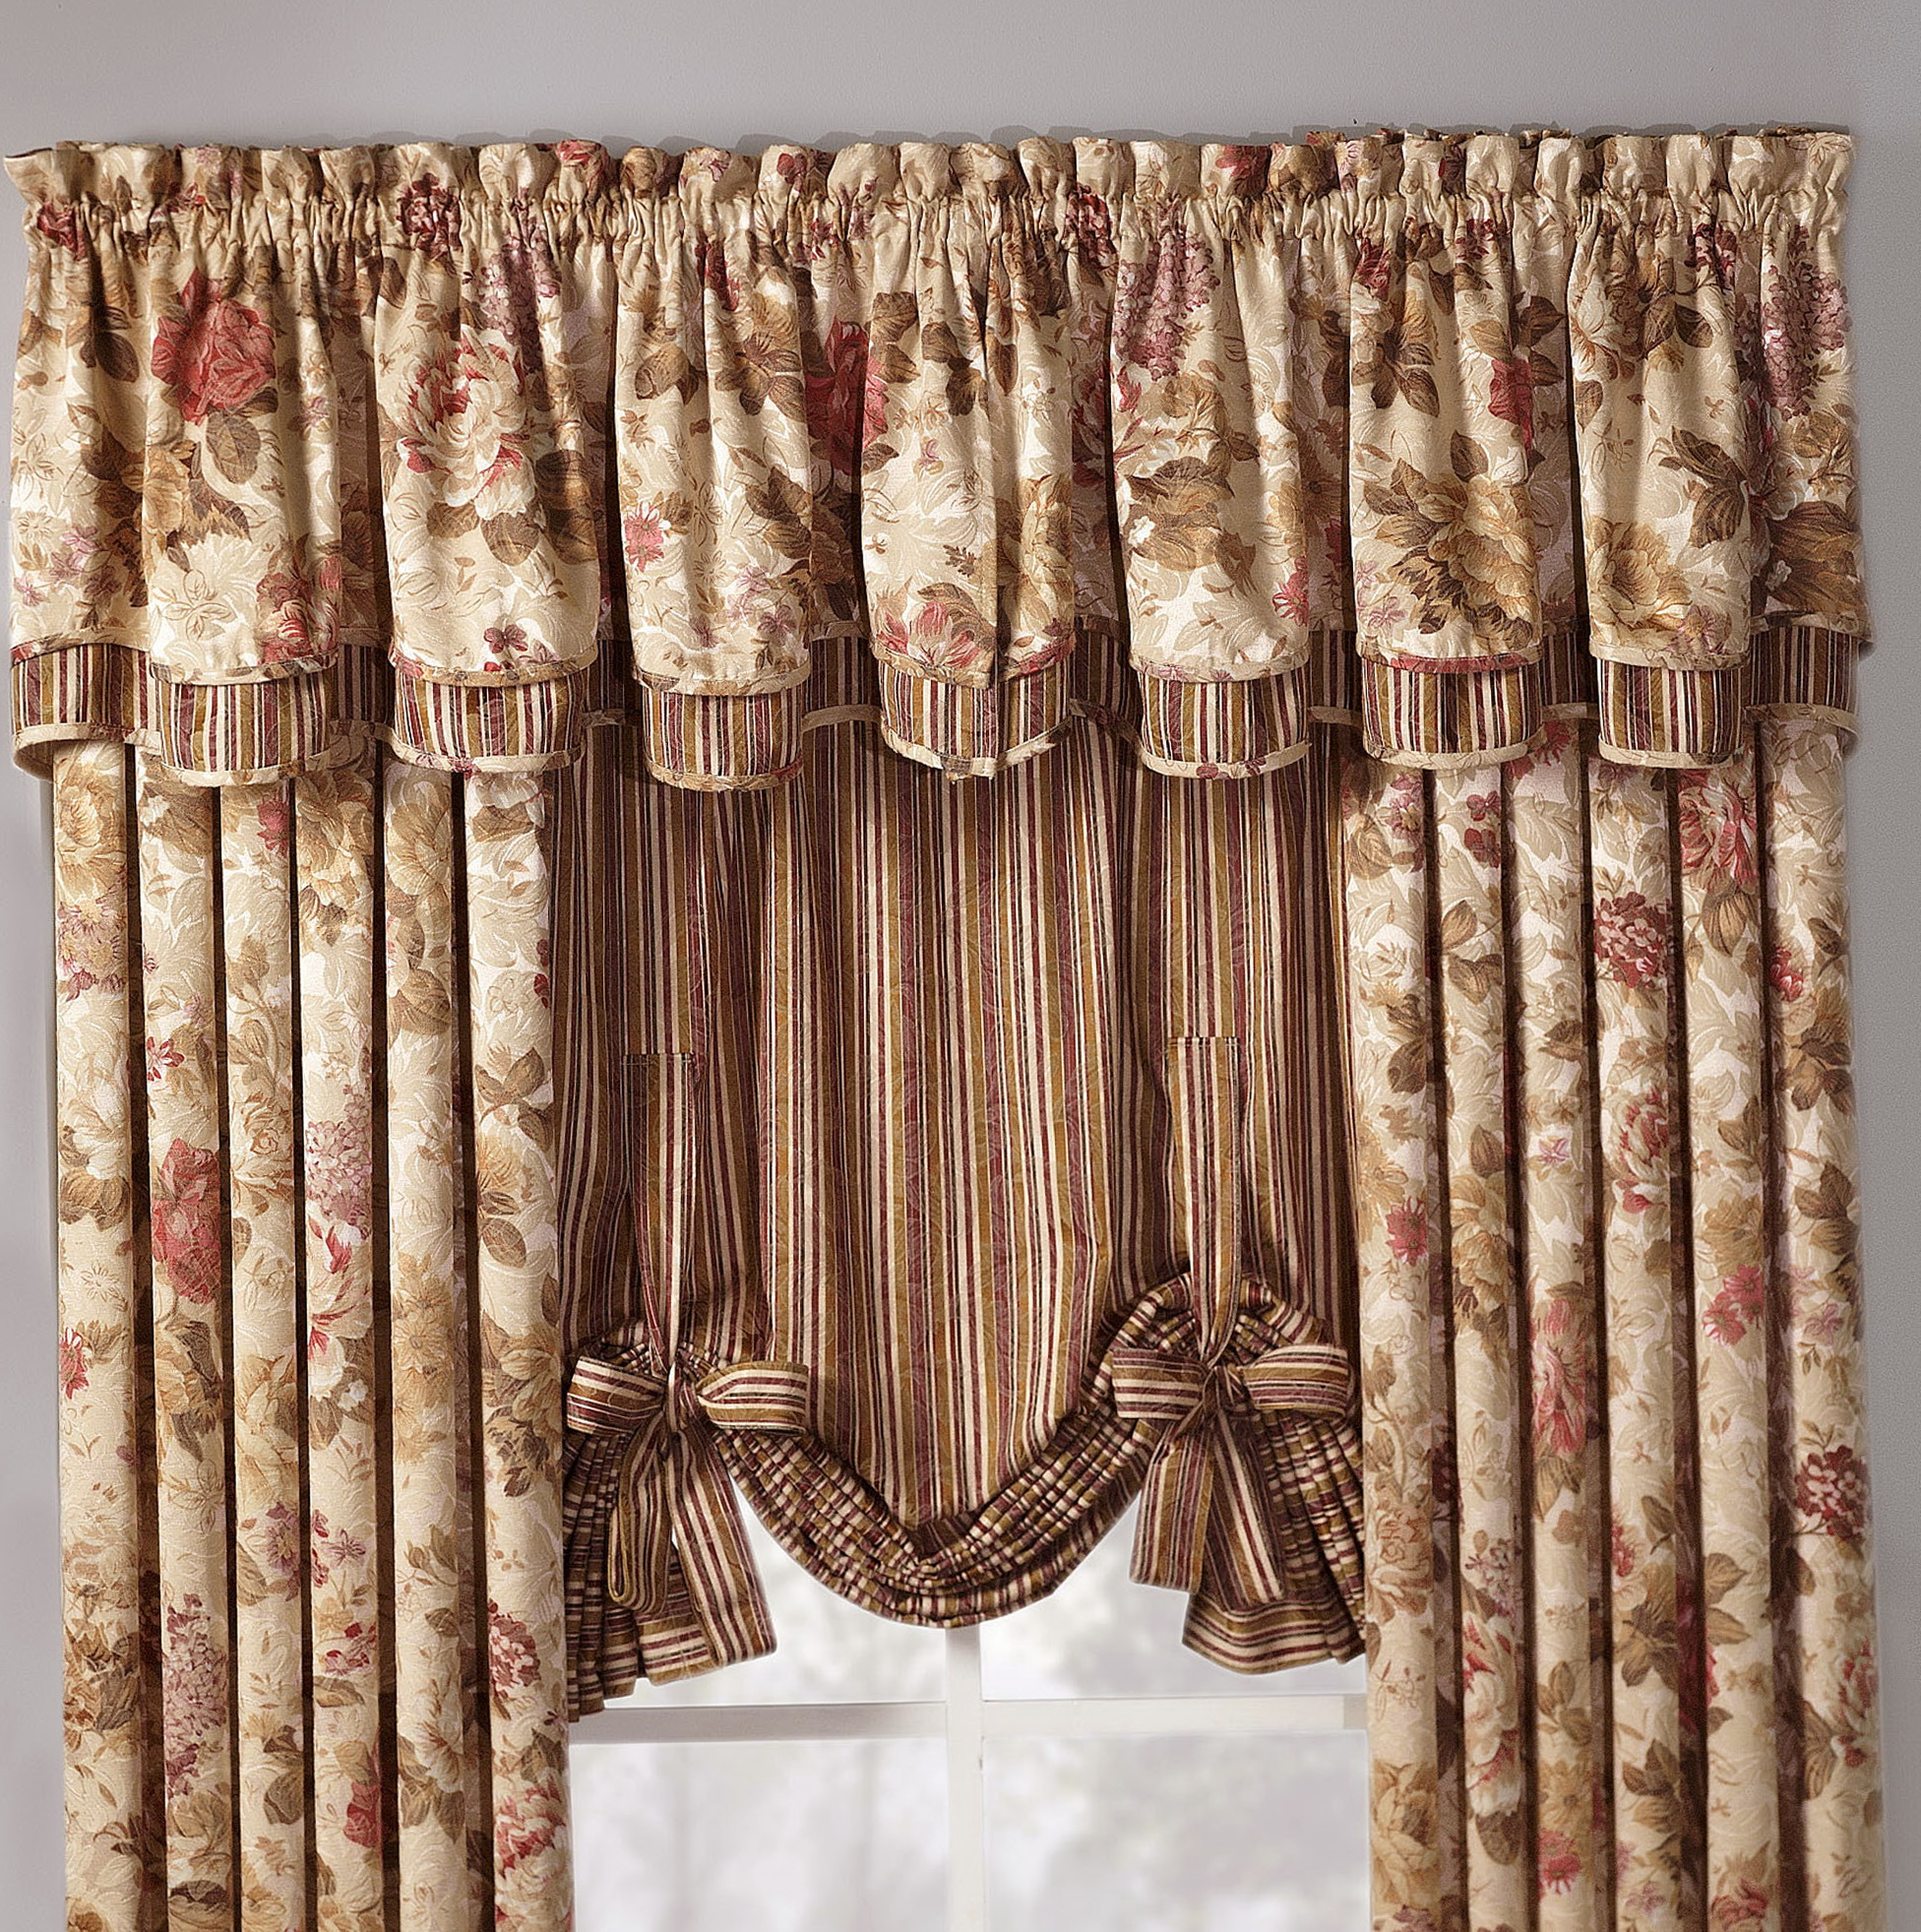 Fancy Shower Curtains With Valance Home Design Ideas